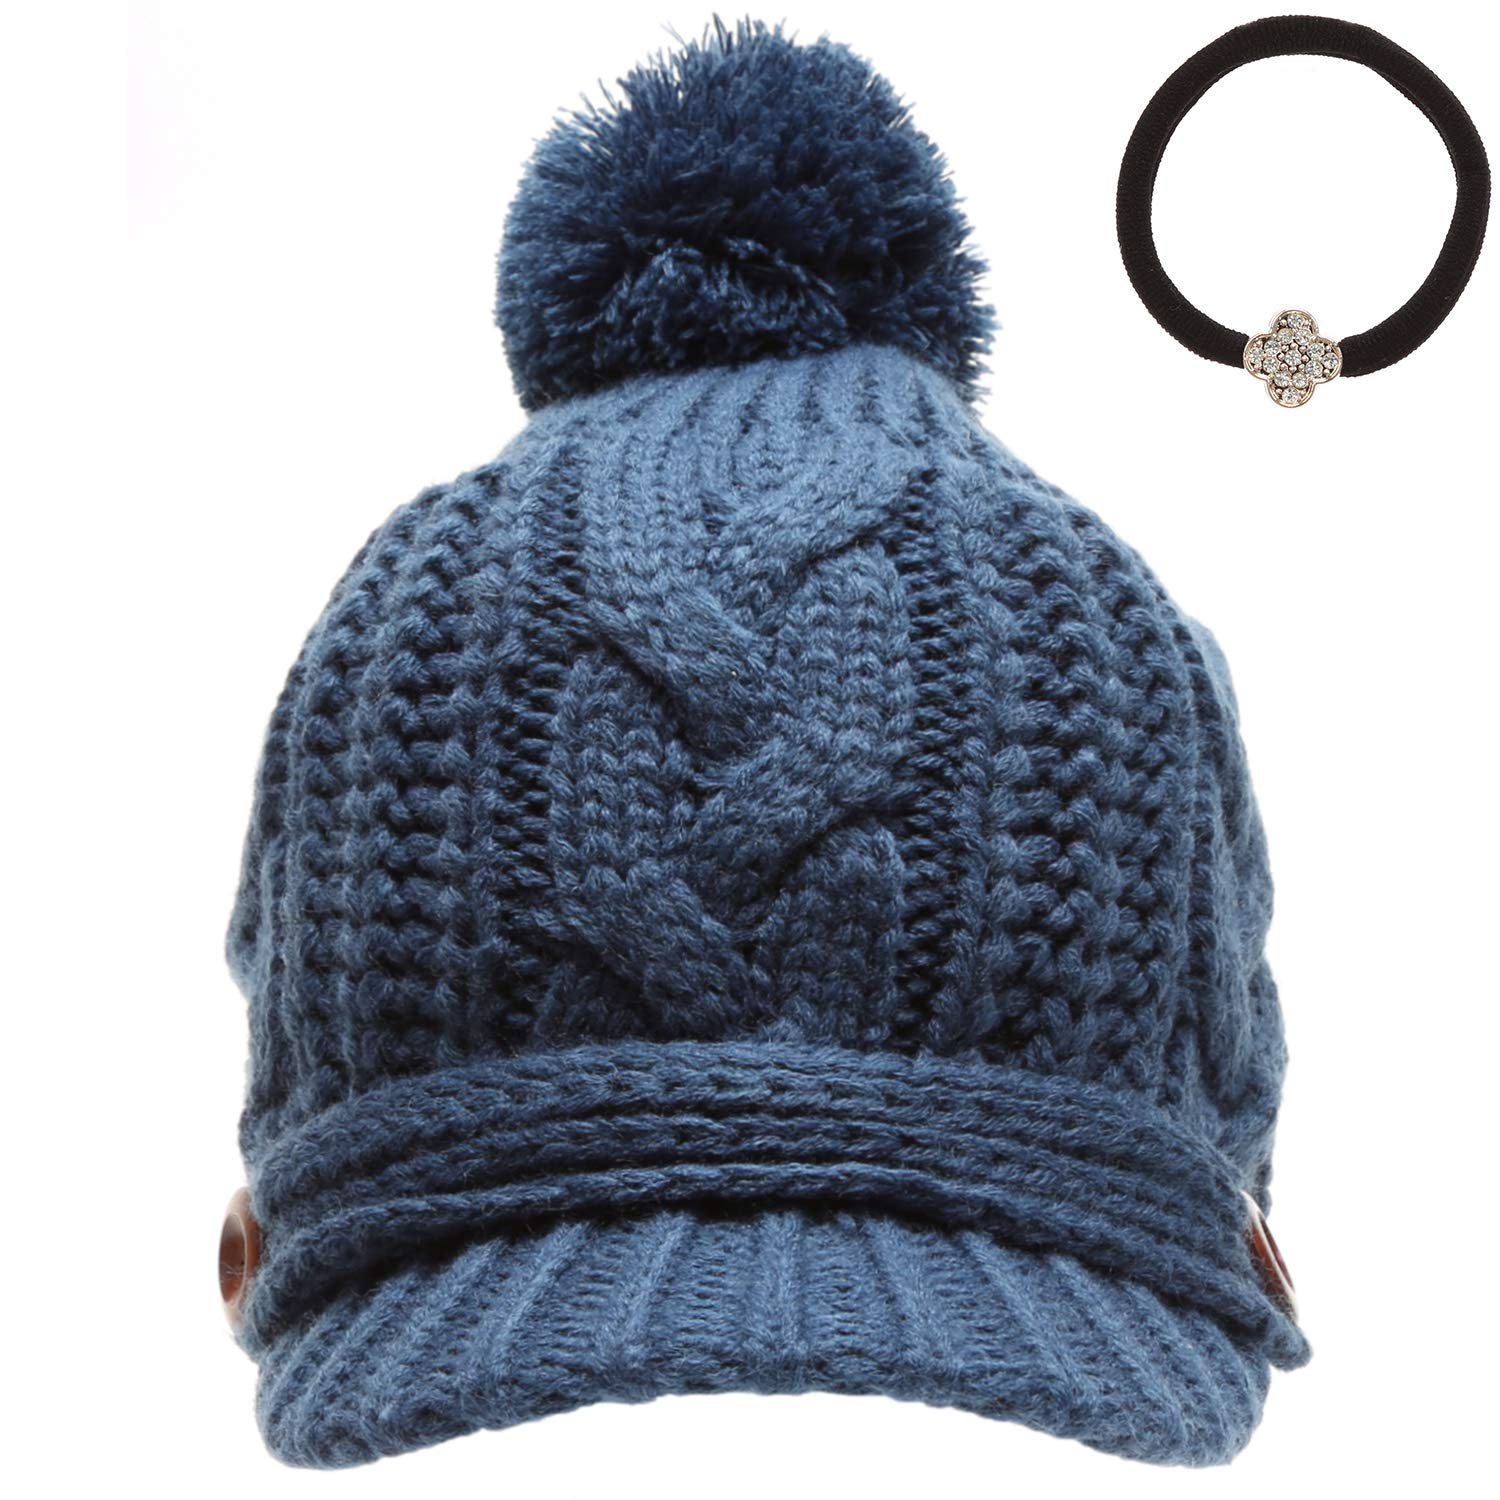 MIRMARU Women's Thick Cable Knitted Beanie Visor Cap Button Pom Pom with Scrunchy (Teal)